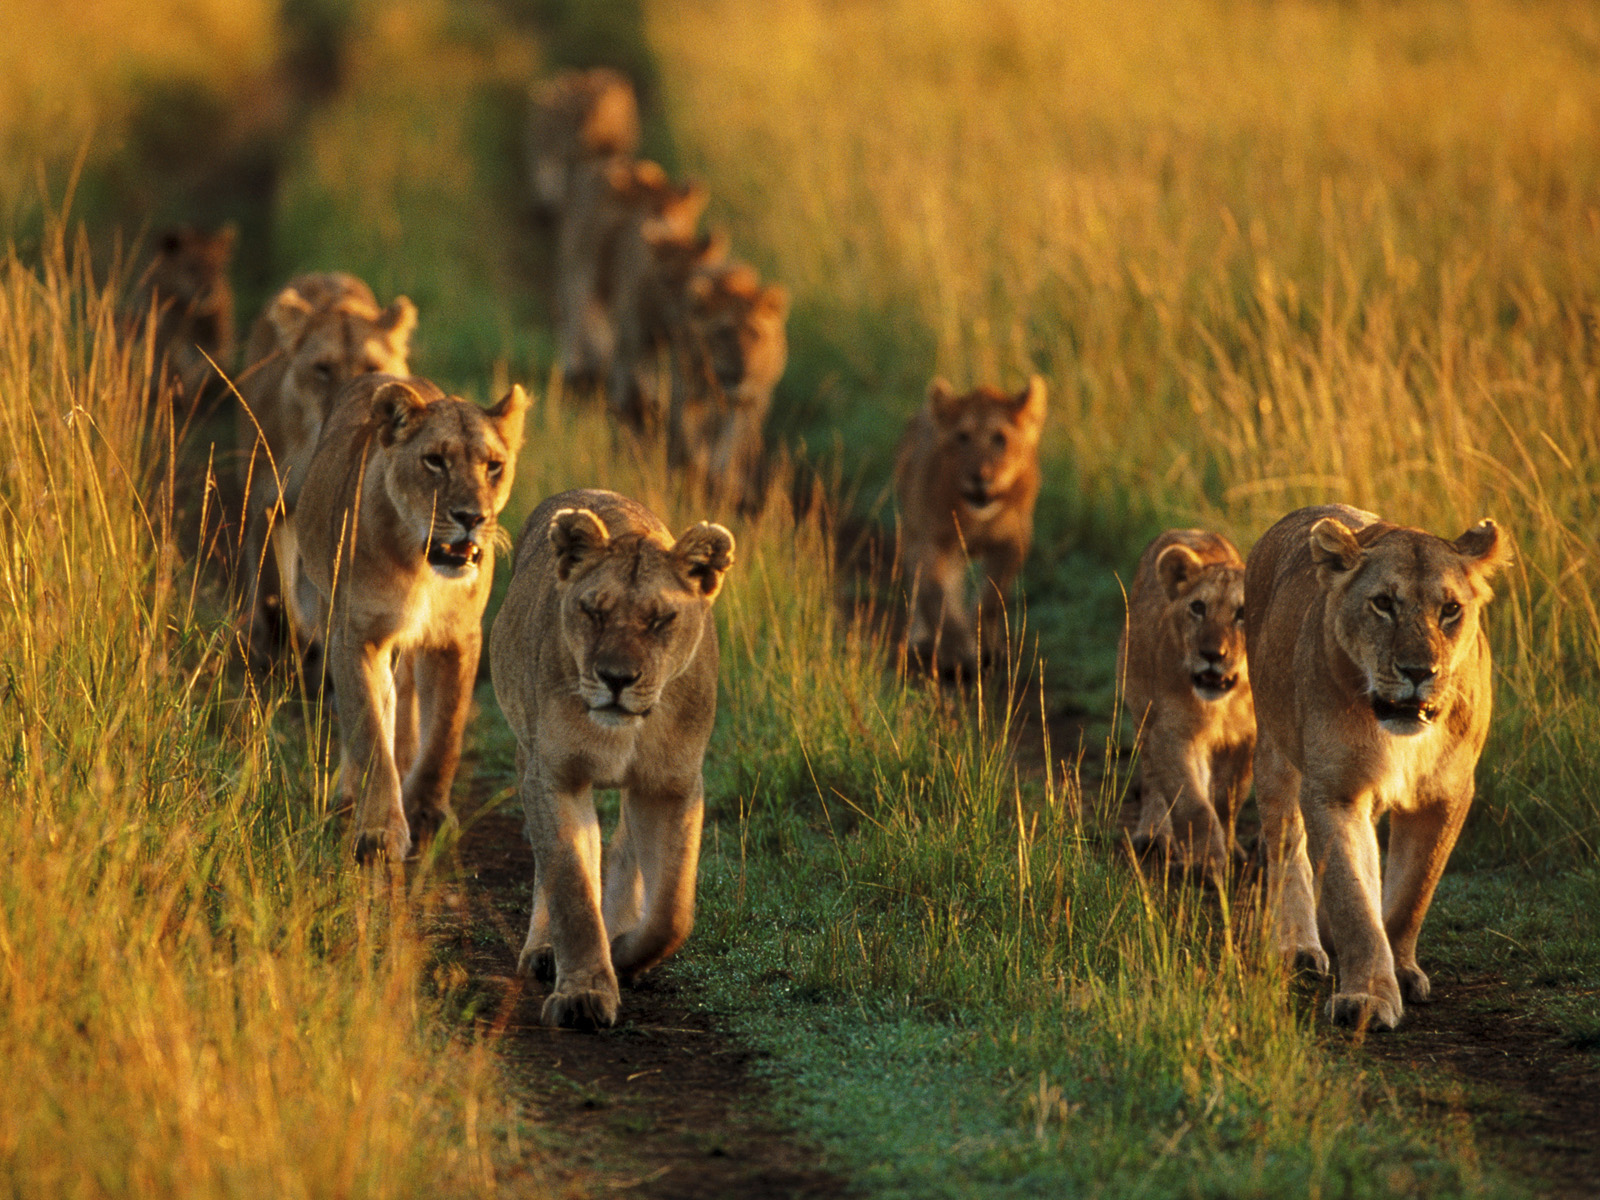 pride_of_lions__masai_mara_national_reserve__kenya